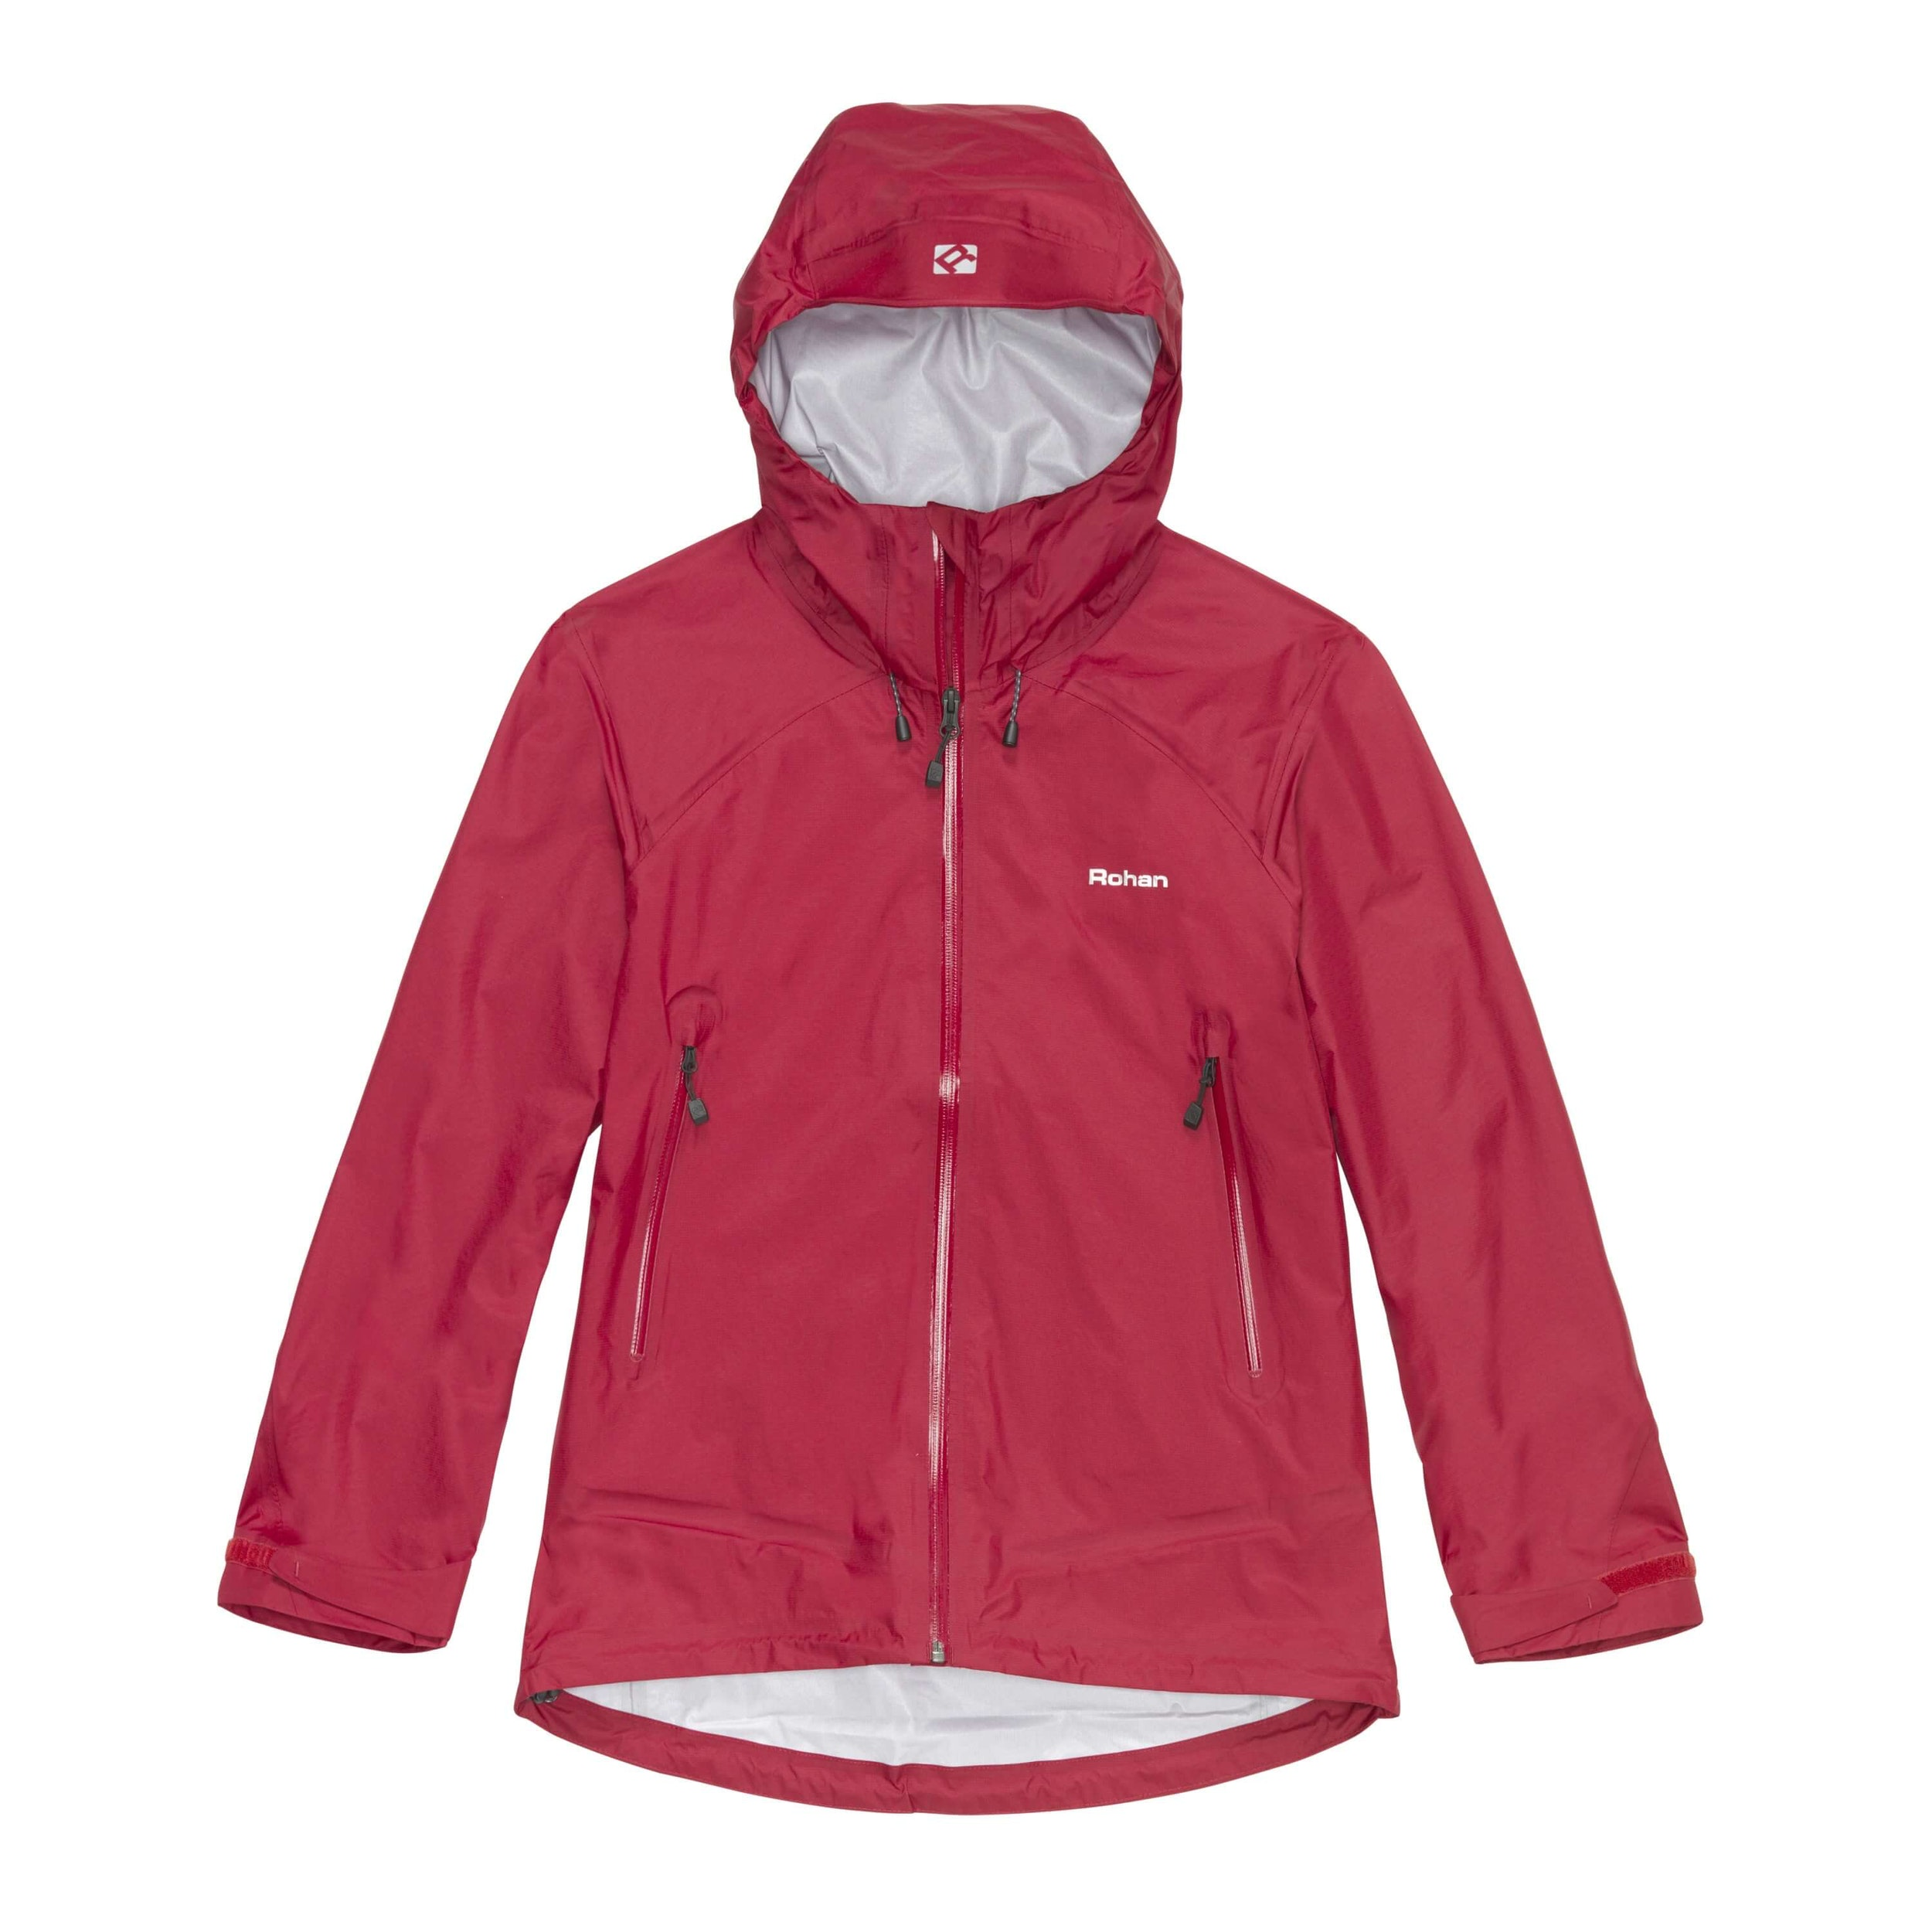 Ladies waterproof jackets Waterproof trousers at Rohan Womens